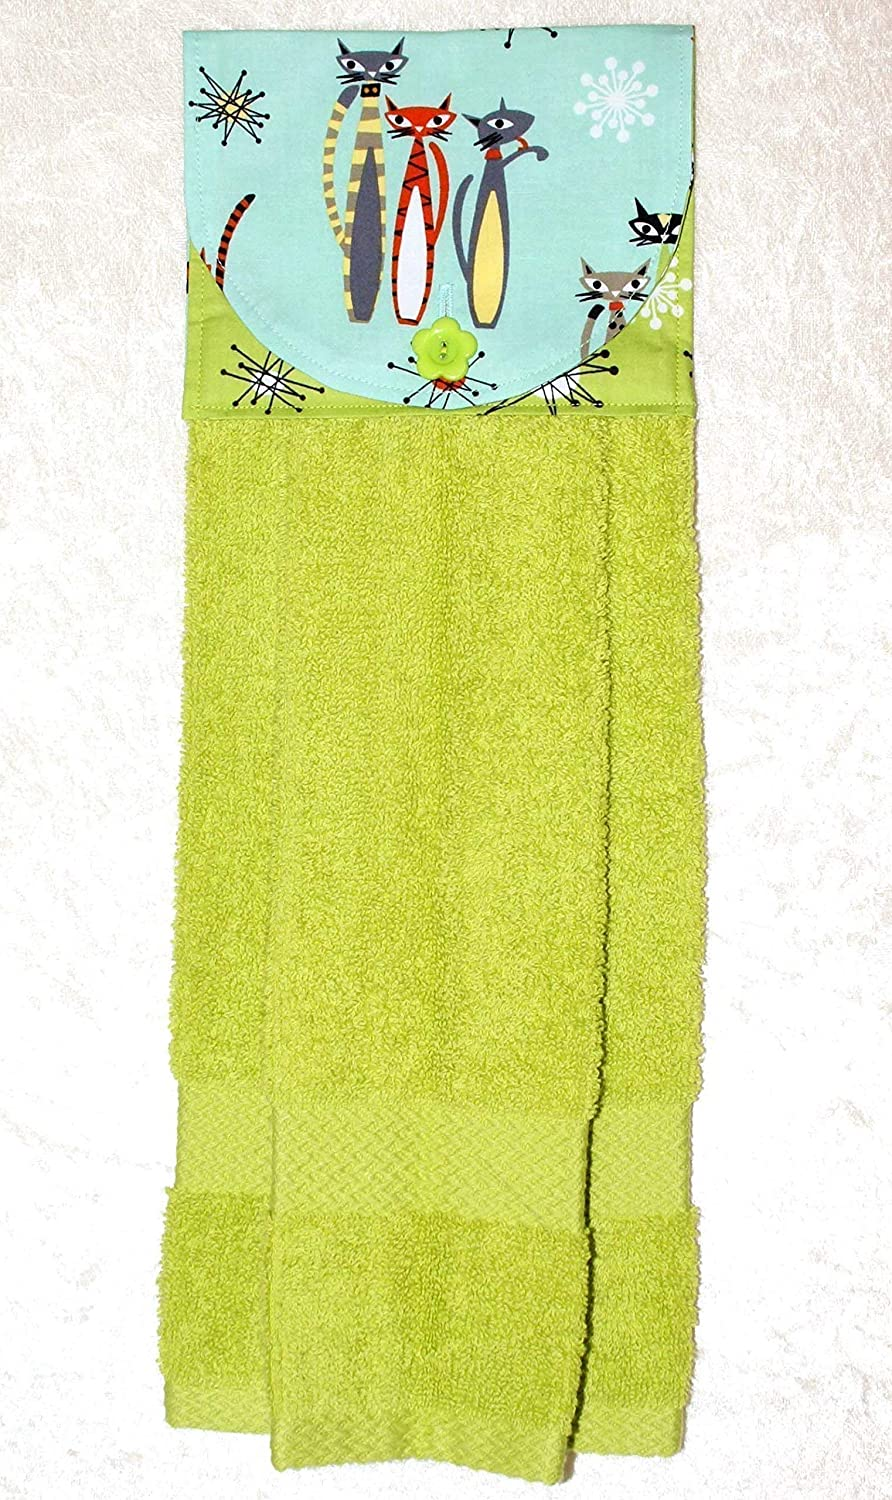 Mod Cats On Aqua /& Green Starburst Accent Fabric Plush Green Kitchen Towel Hanging Hand Towel